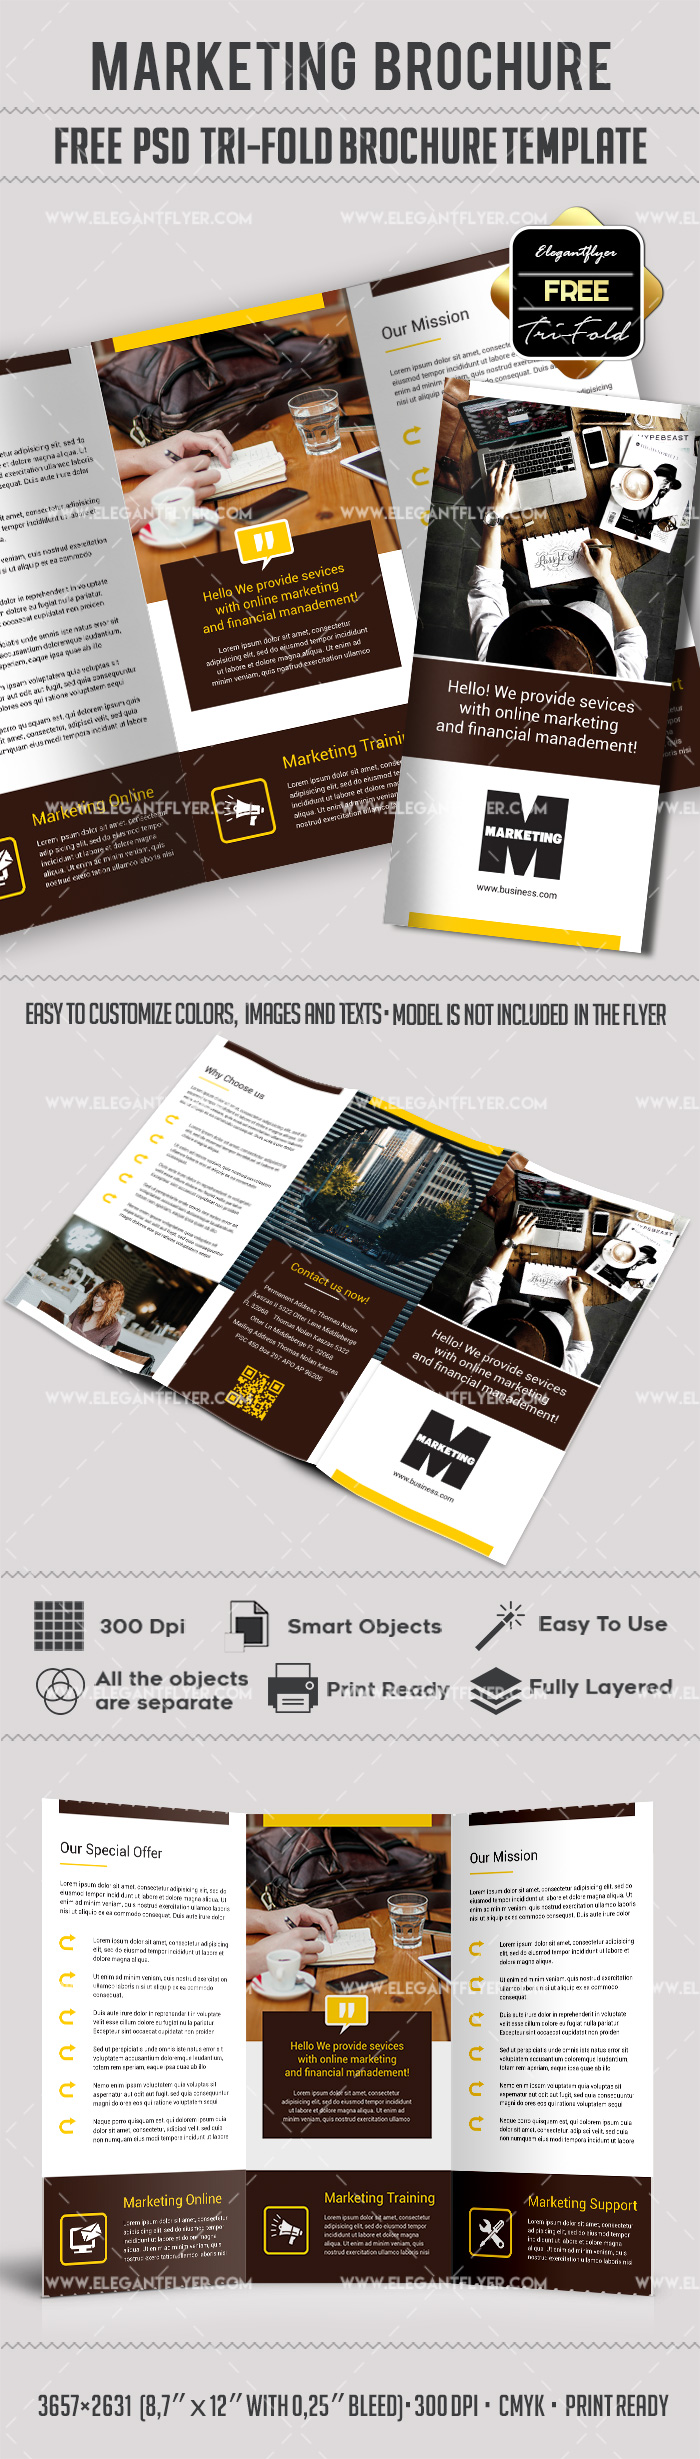 Marketing free tri fold psd brochure template by for Brochure template psd free download